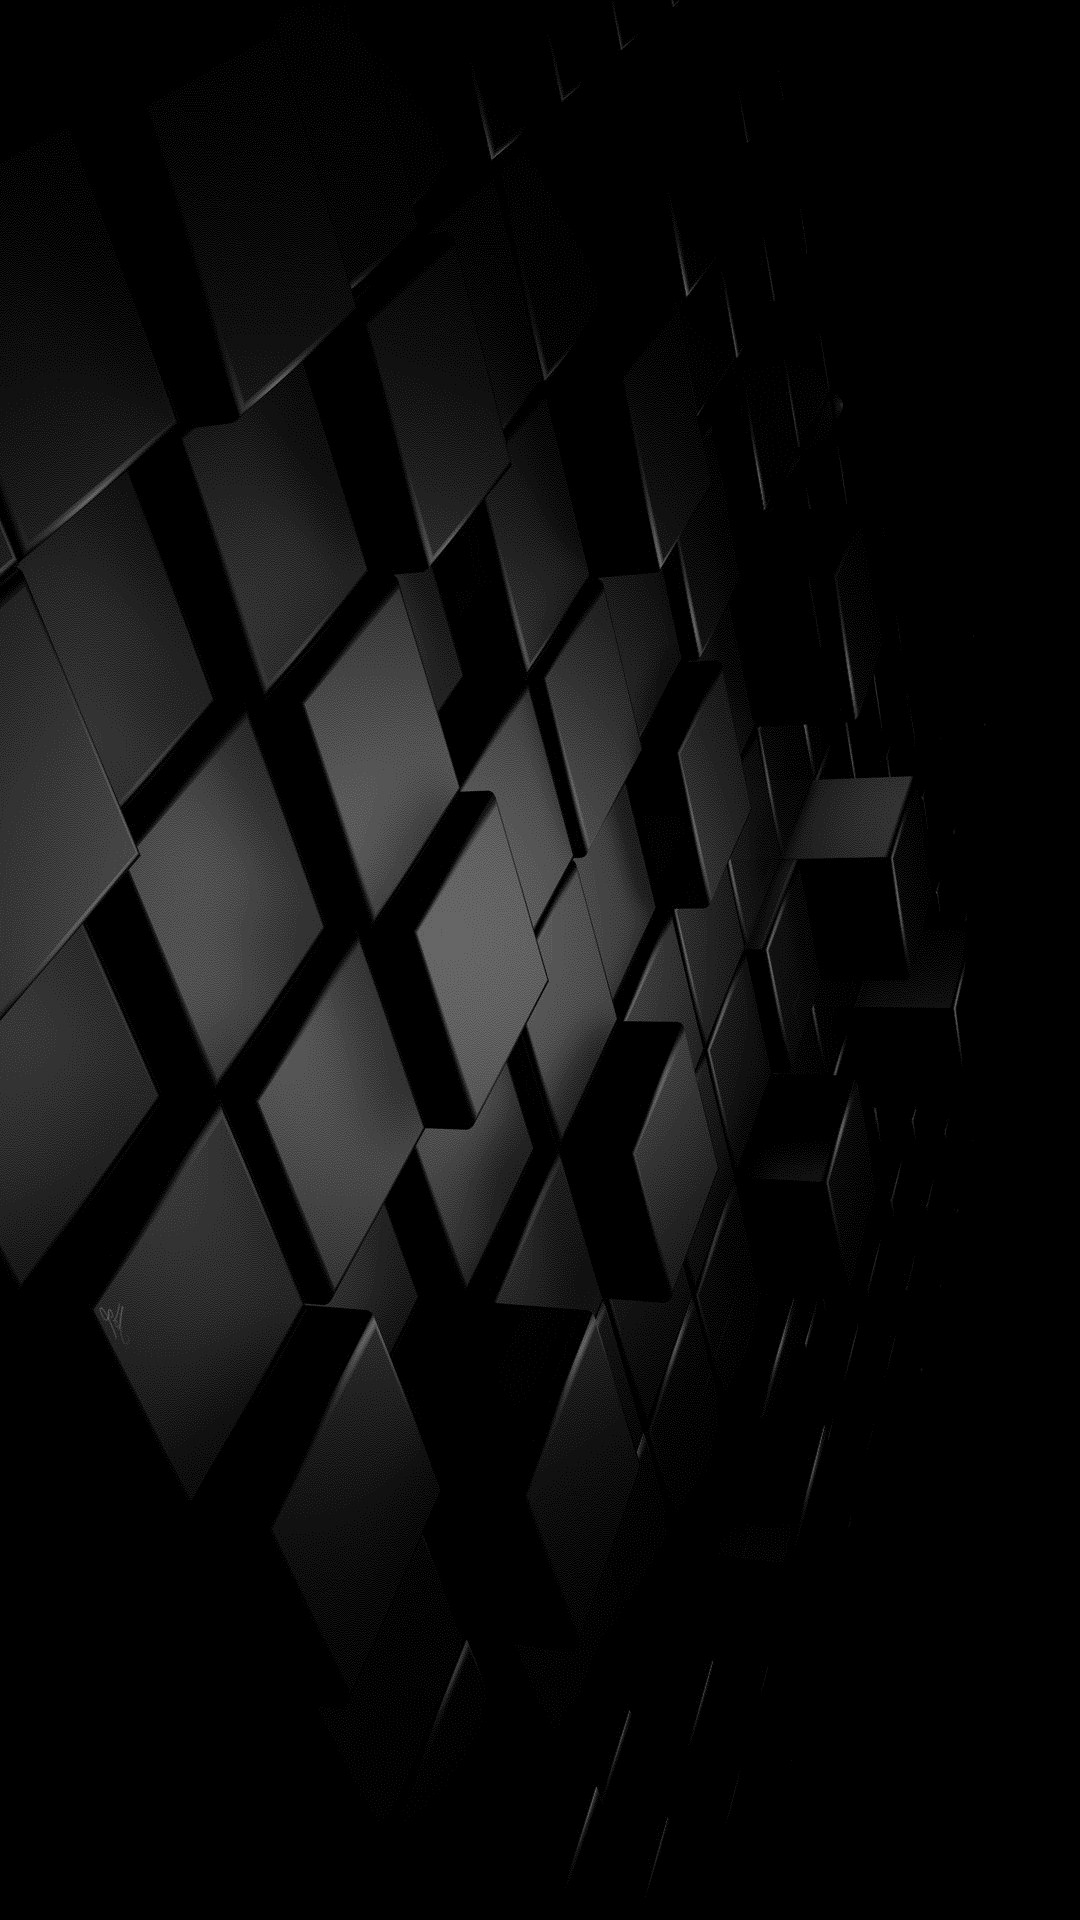 Black Wallpaper Hd 1080p Posted By Sarah Simpson